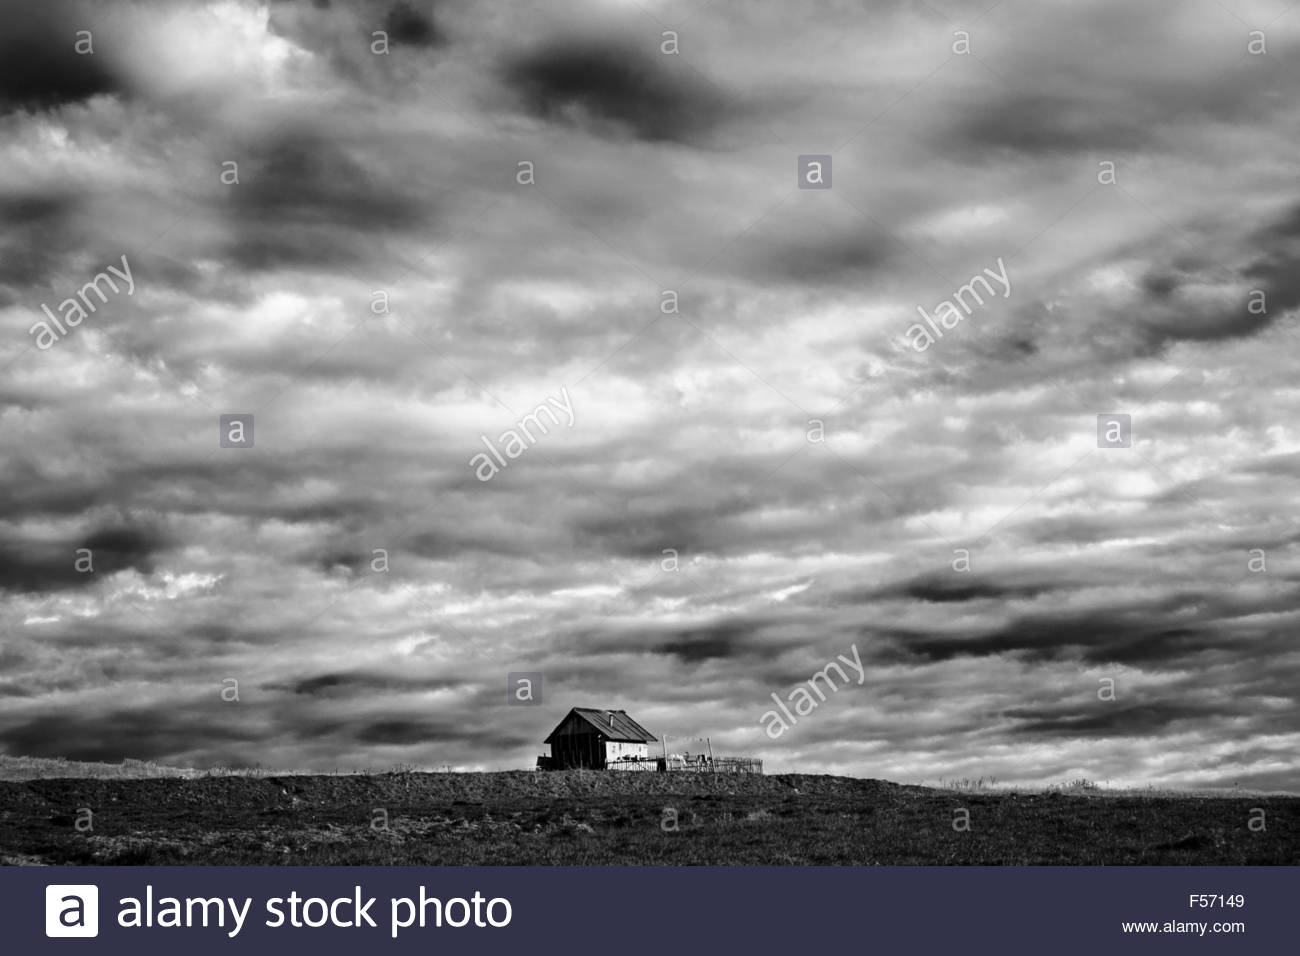 Sheepfold cottage at autumn in Transylvania, Romania.  Lowering, big dark skies. Black and white, dramatic. Stock Photo